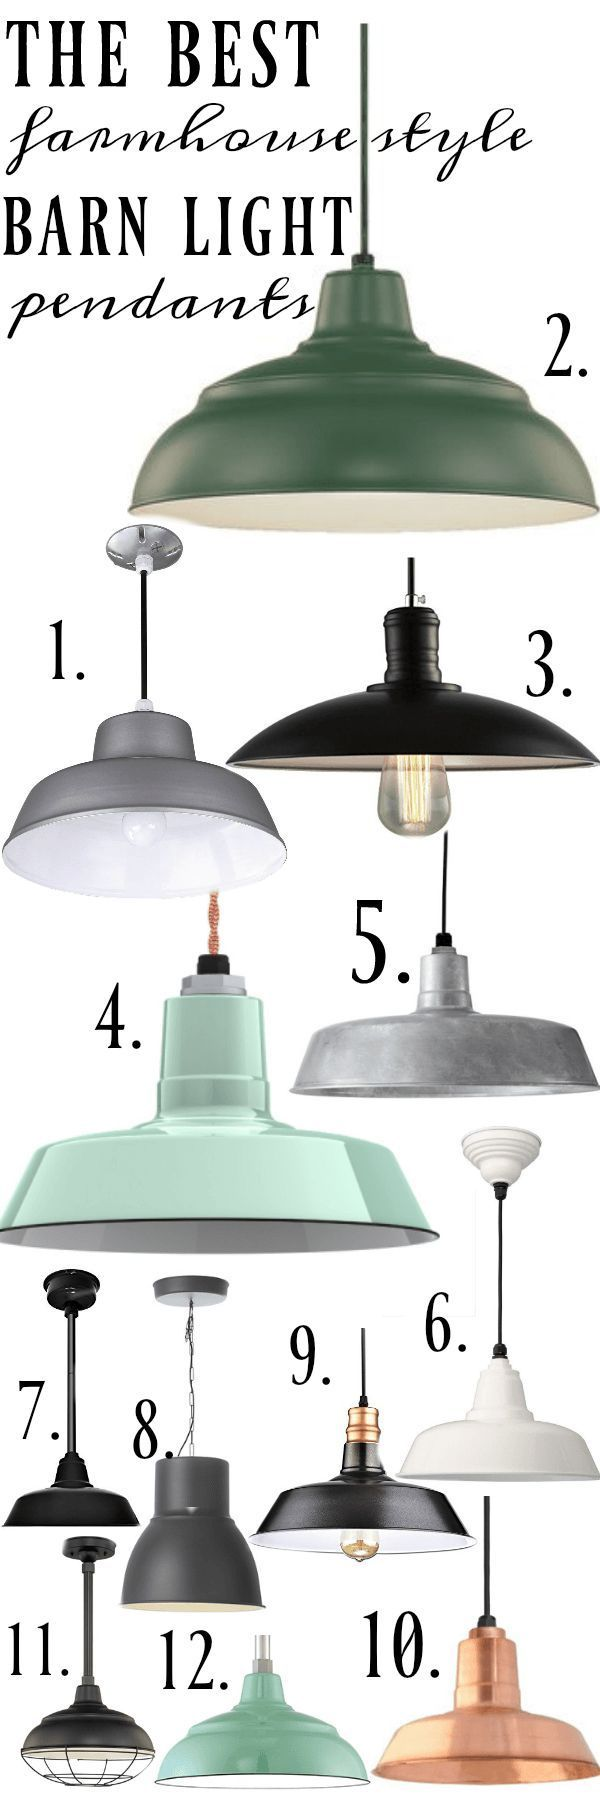 The Best Farmhouse Style Barn Light Pendants A Must Pin For Indoor Outdoor Cottage Lights